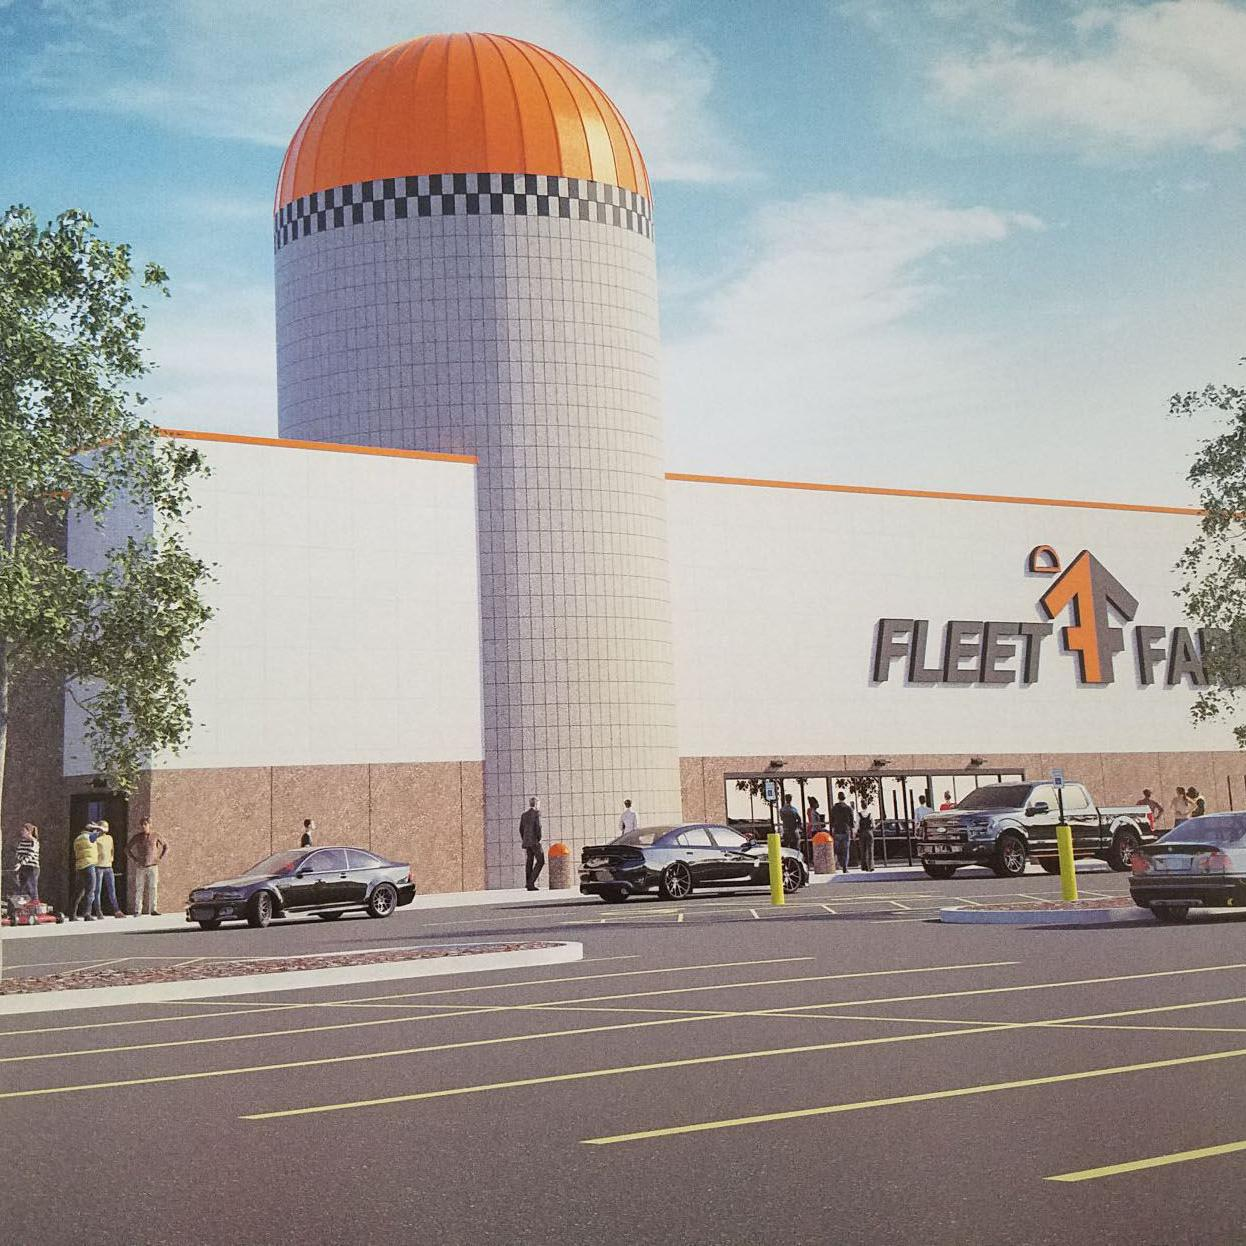 Fleet Farm to build store at Highway 19 and Interstate 39-90